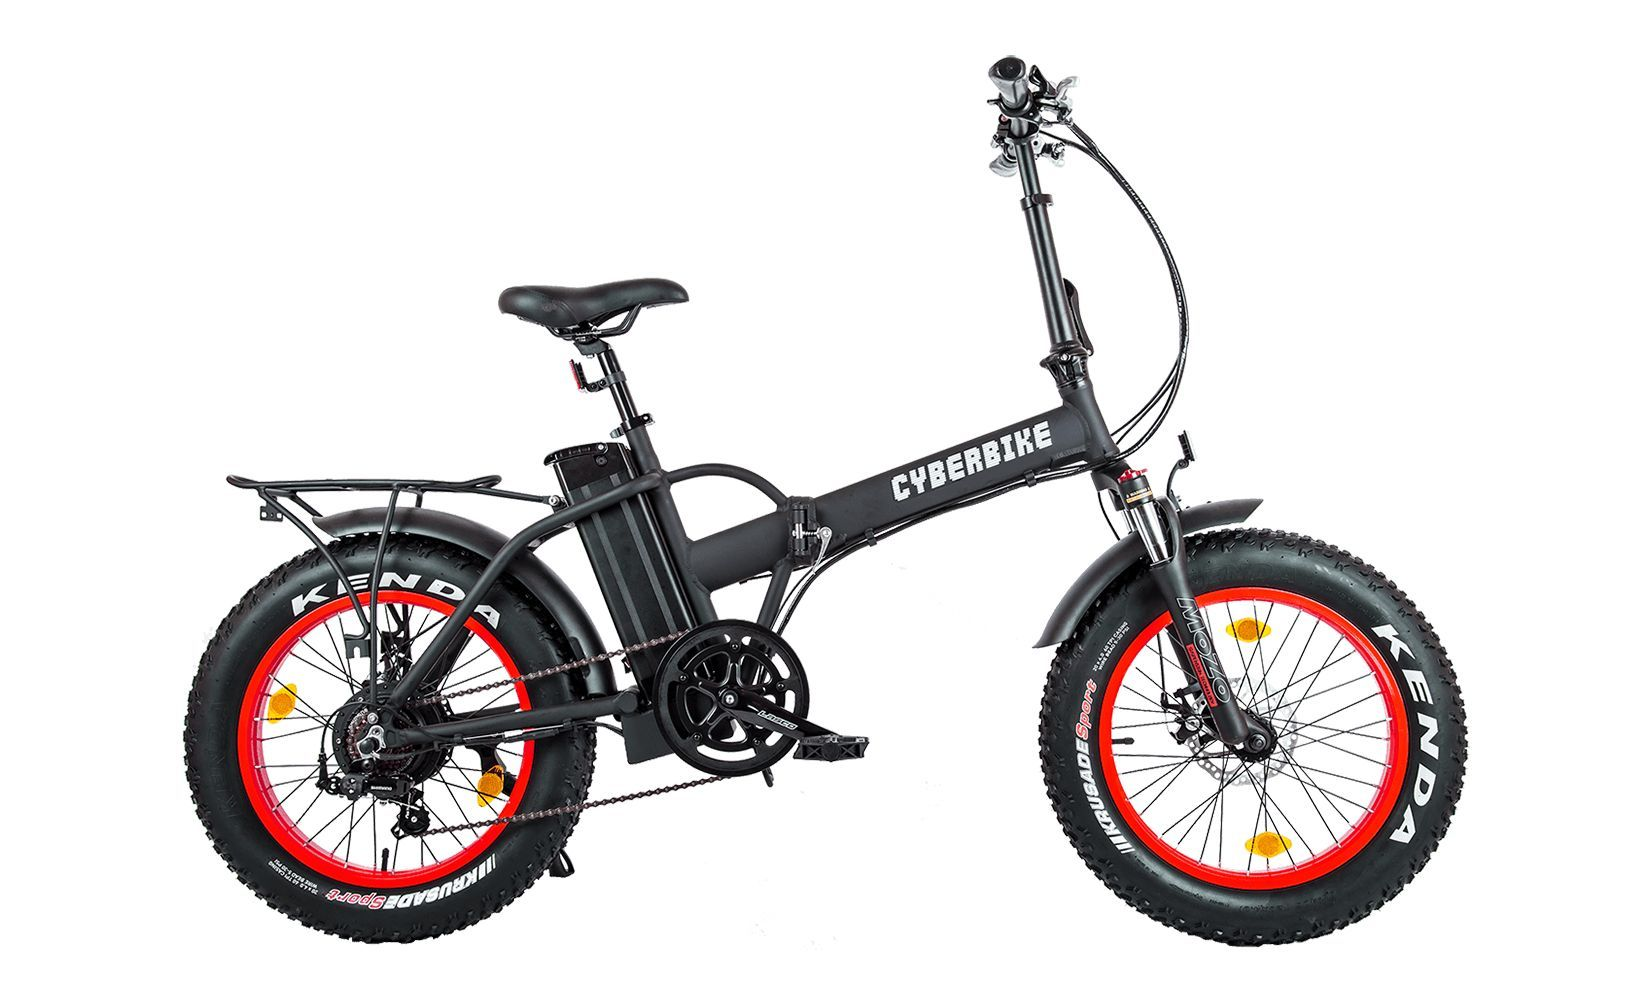 Электровелосипед Cyberbike Fat 500 W 2020 One Size black/red